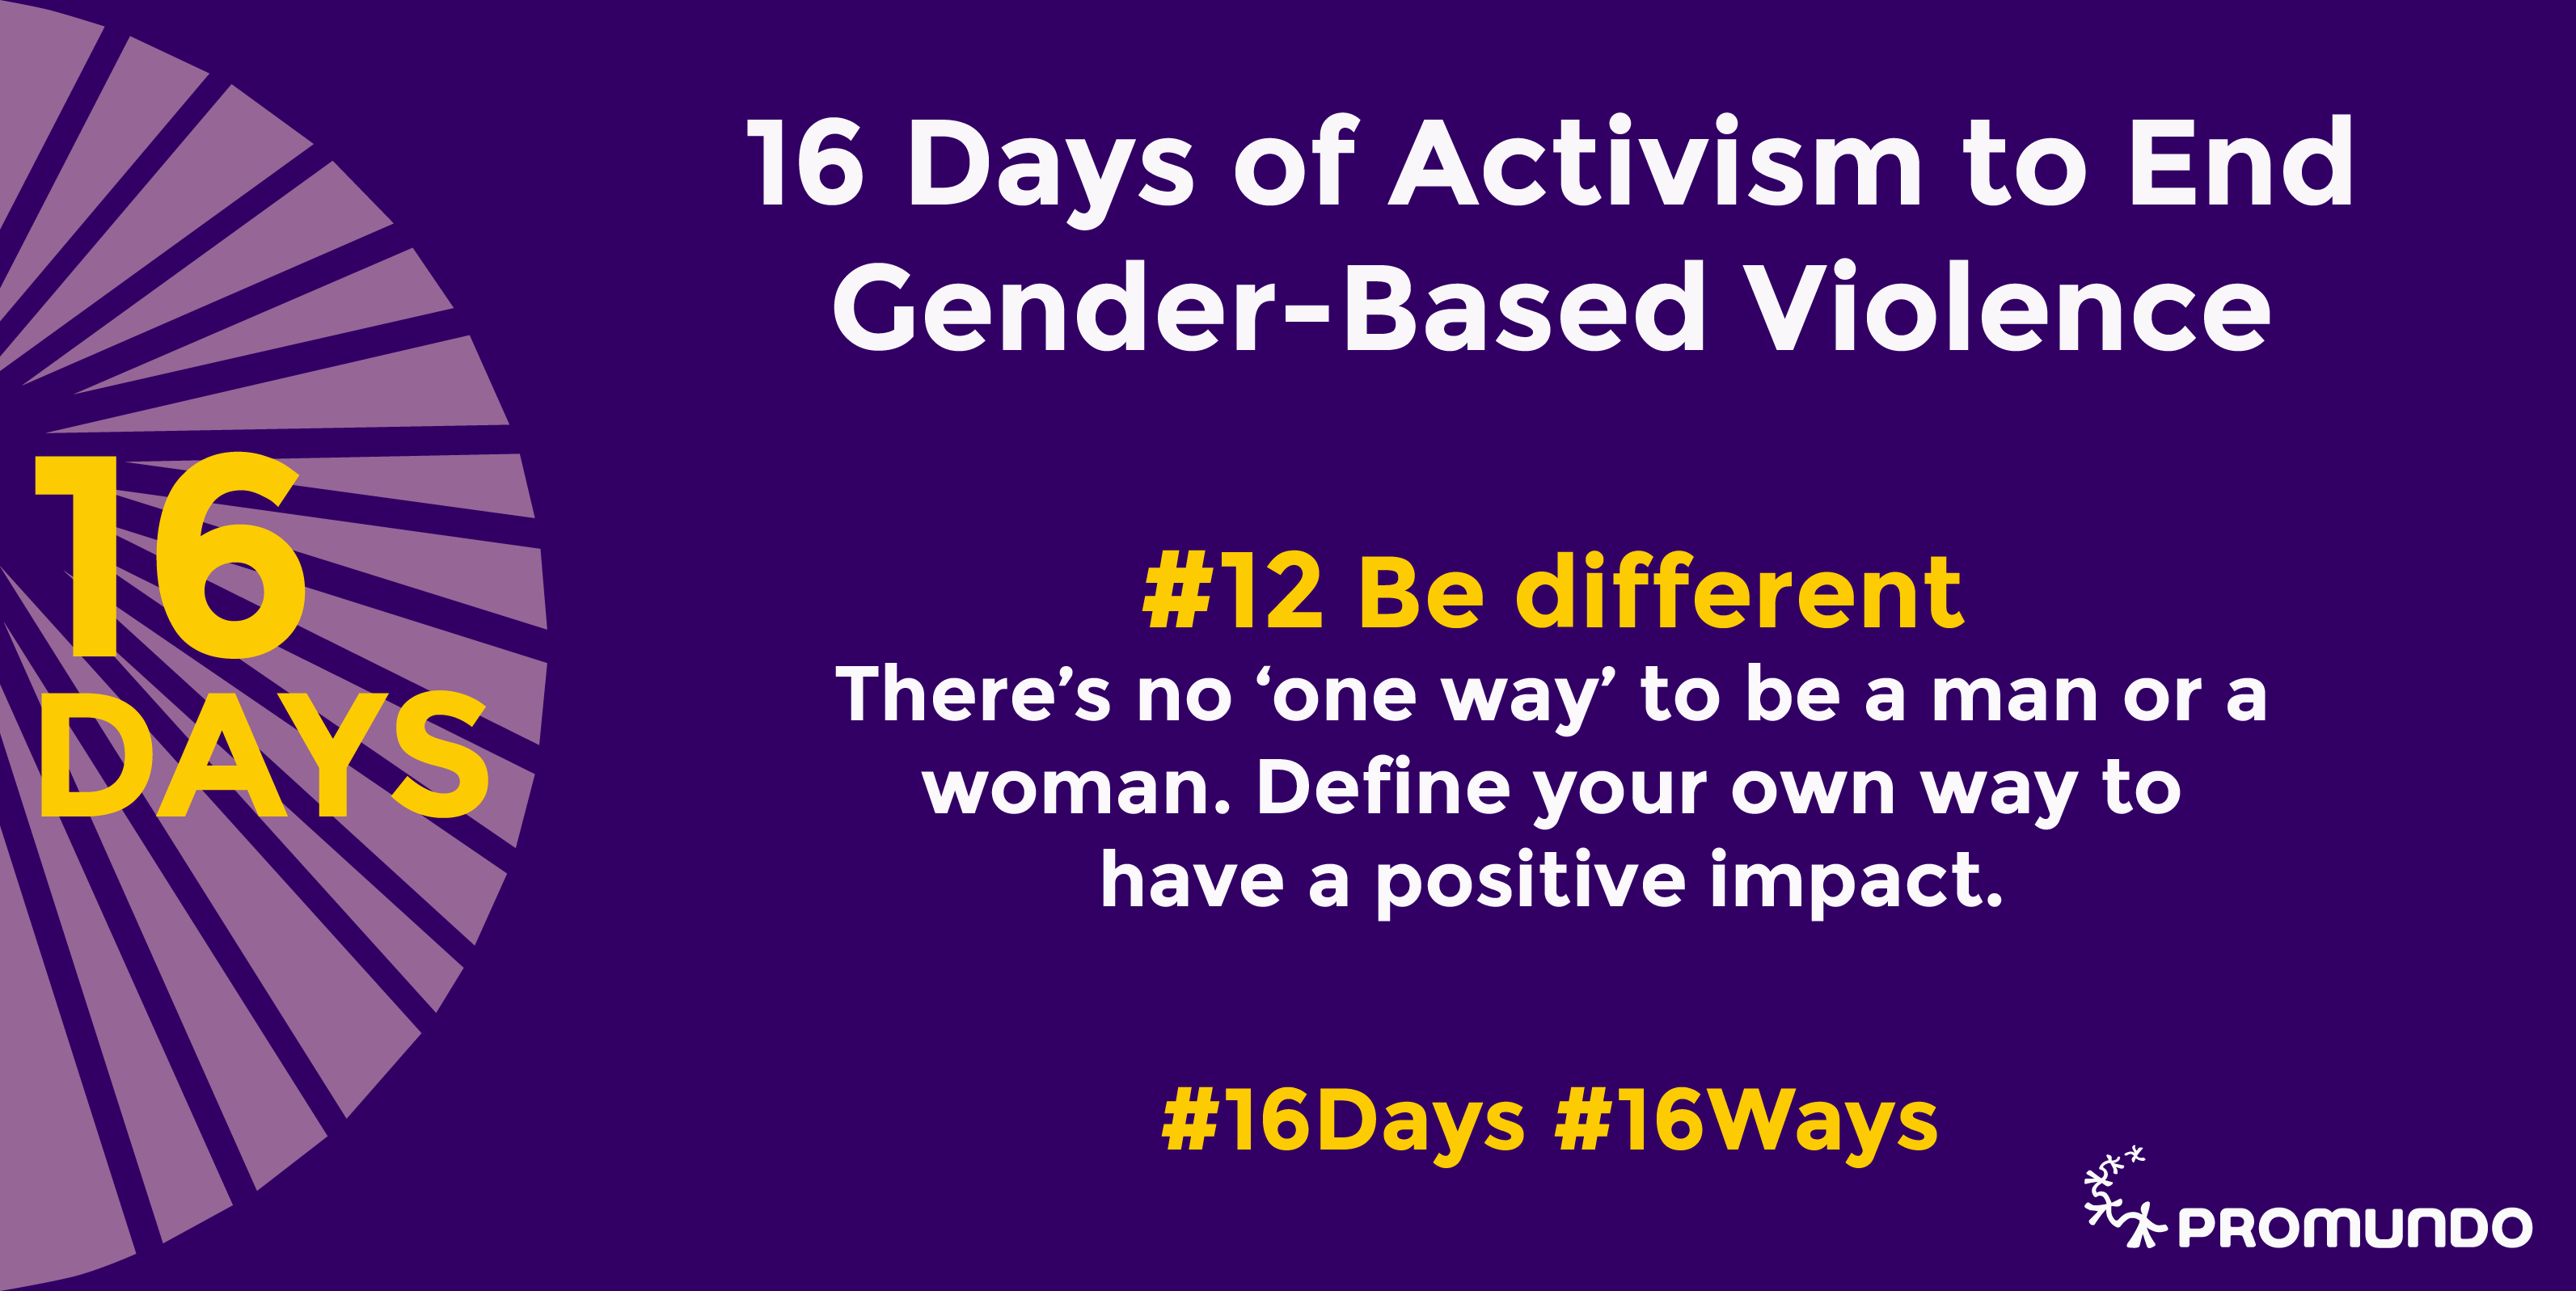 16 Days of Activism, 16 Ways to Prevent GBV